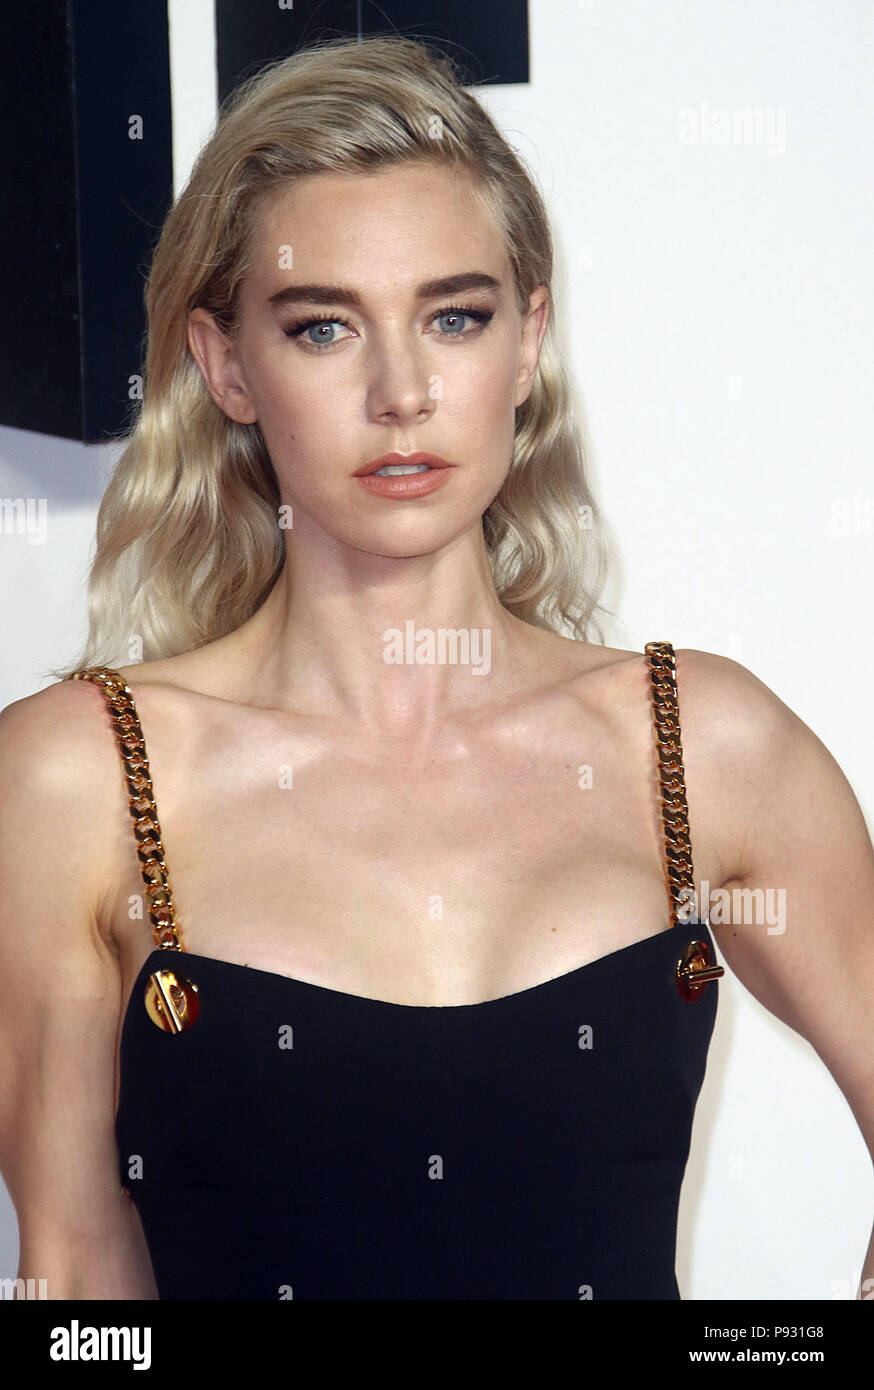 Young Vanessa Kirby nudes (63 photos), Tits, Leaked, Instagram, legs 2006